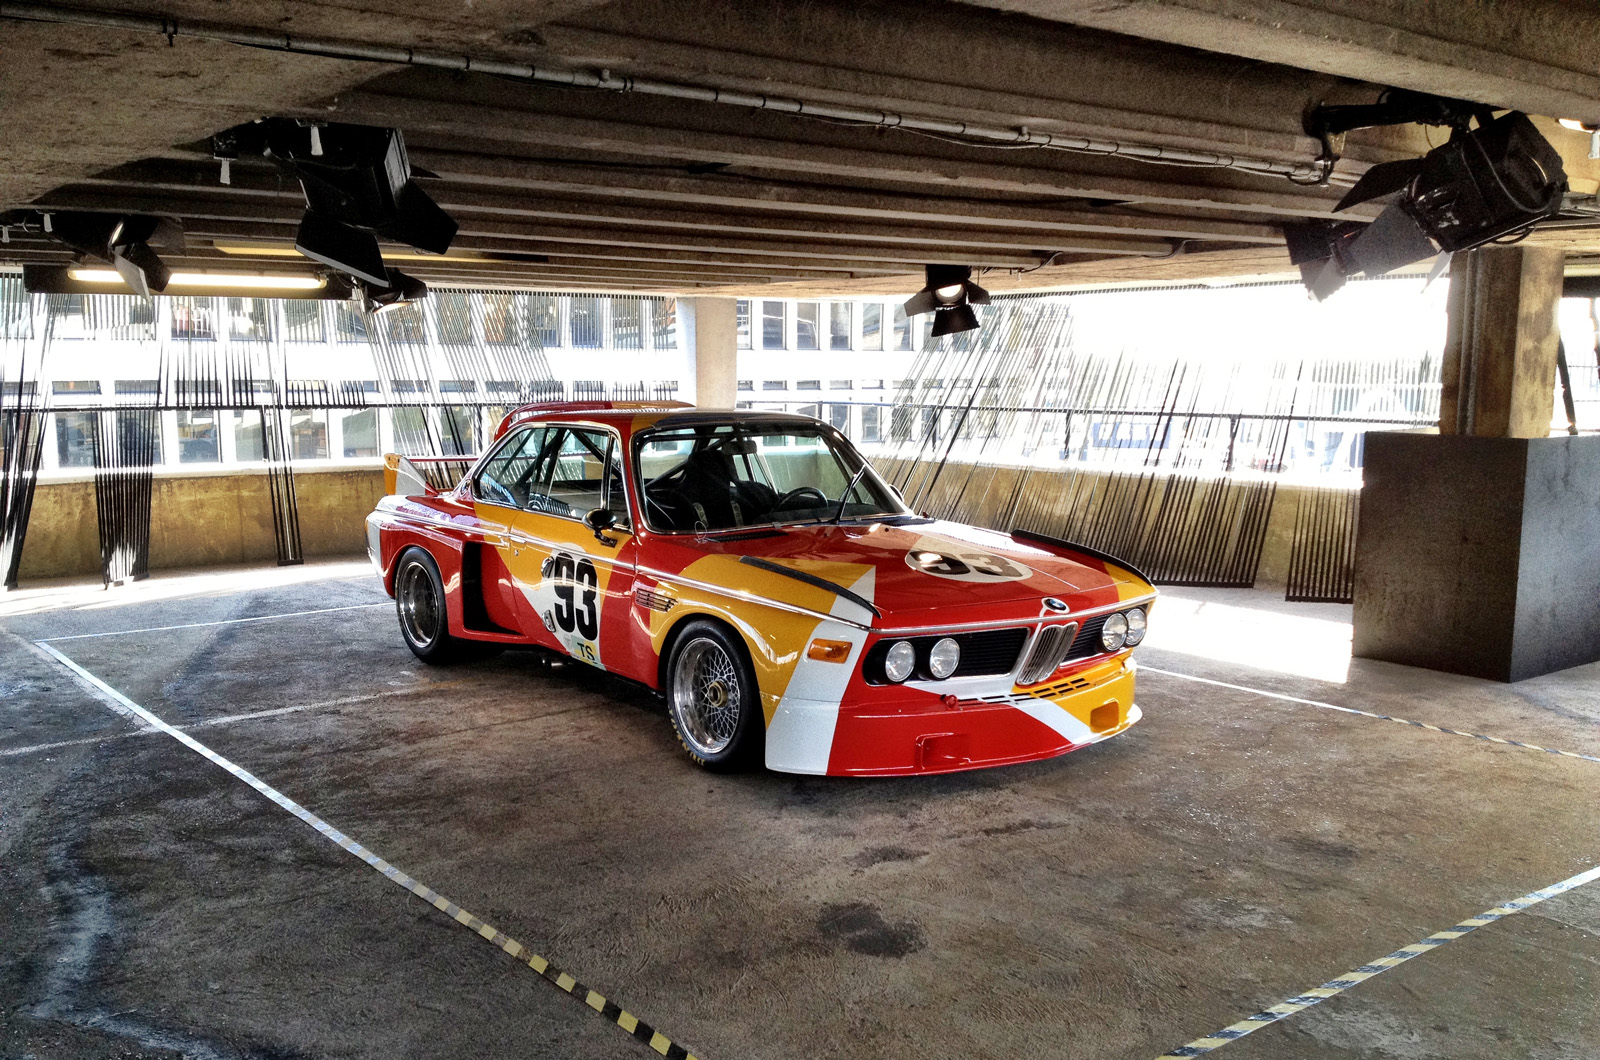 BMW's art car collection is well worth a visit